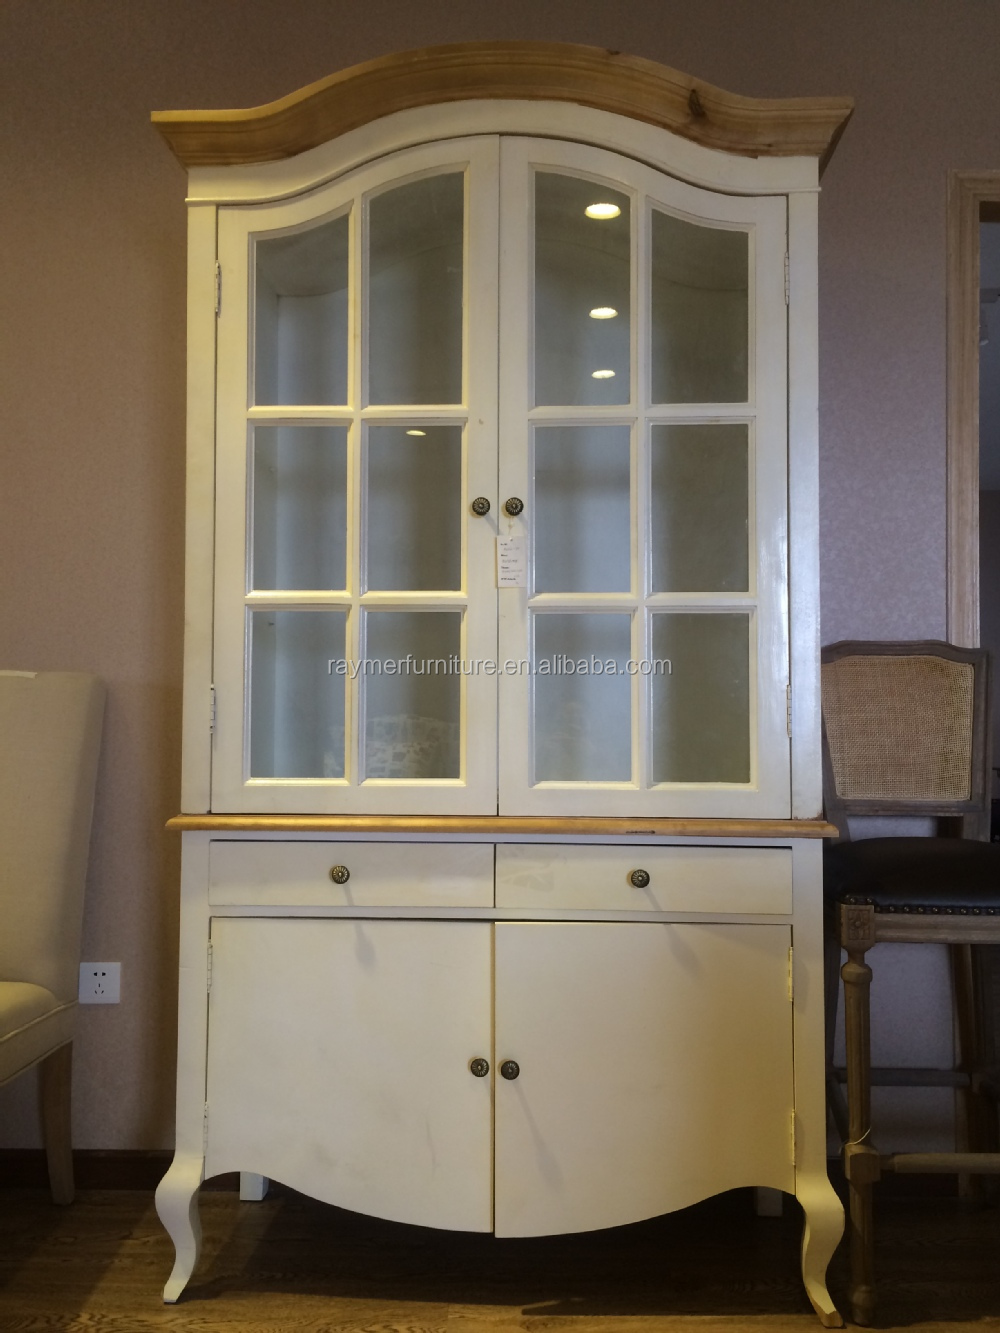 White washed oak furniture farmhouse rustic wood glass display cabinet